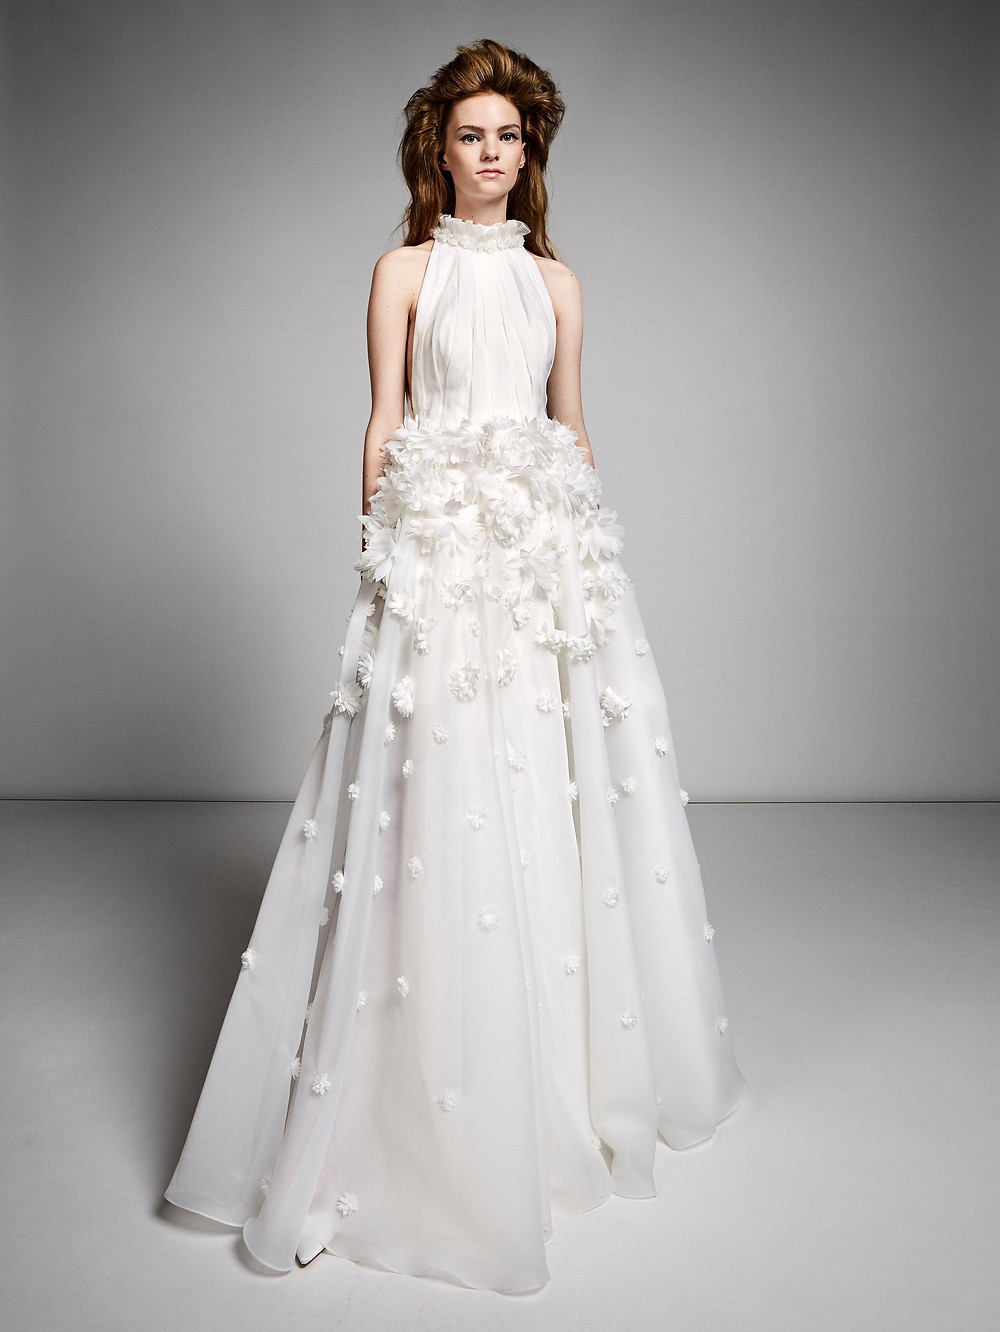 A Viktor & Rolf halterneck A-line wedding dress with flowers